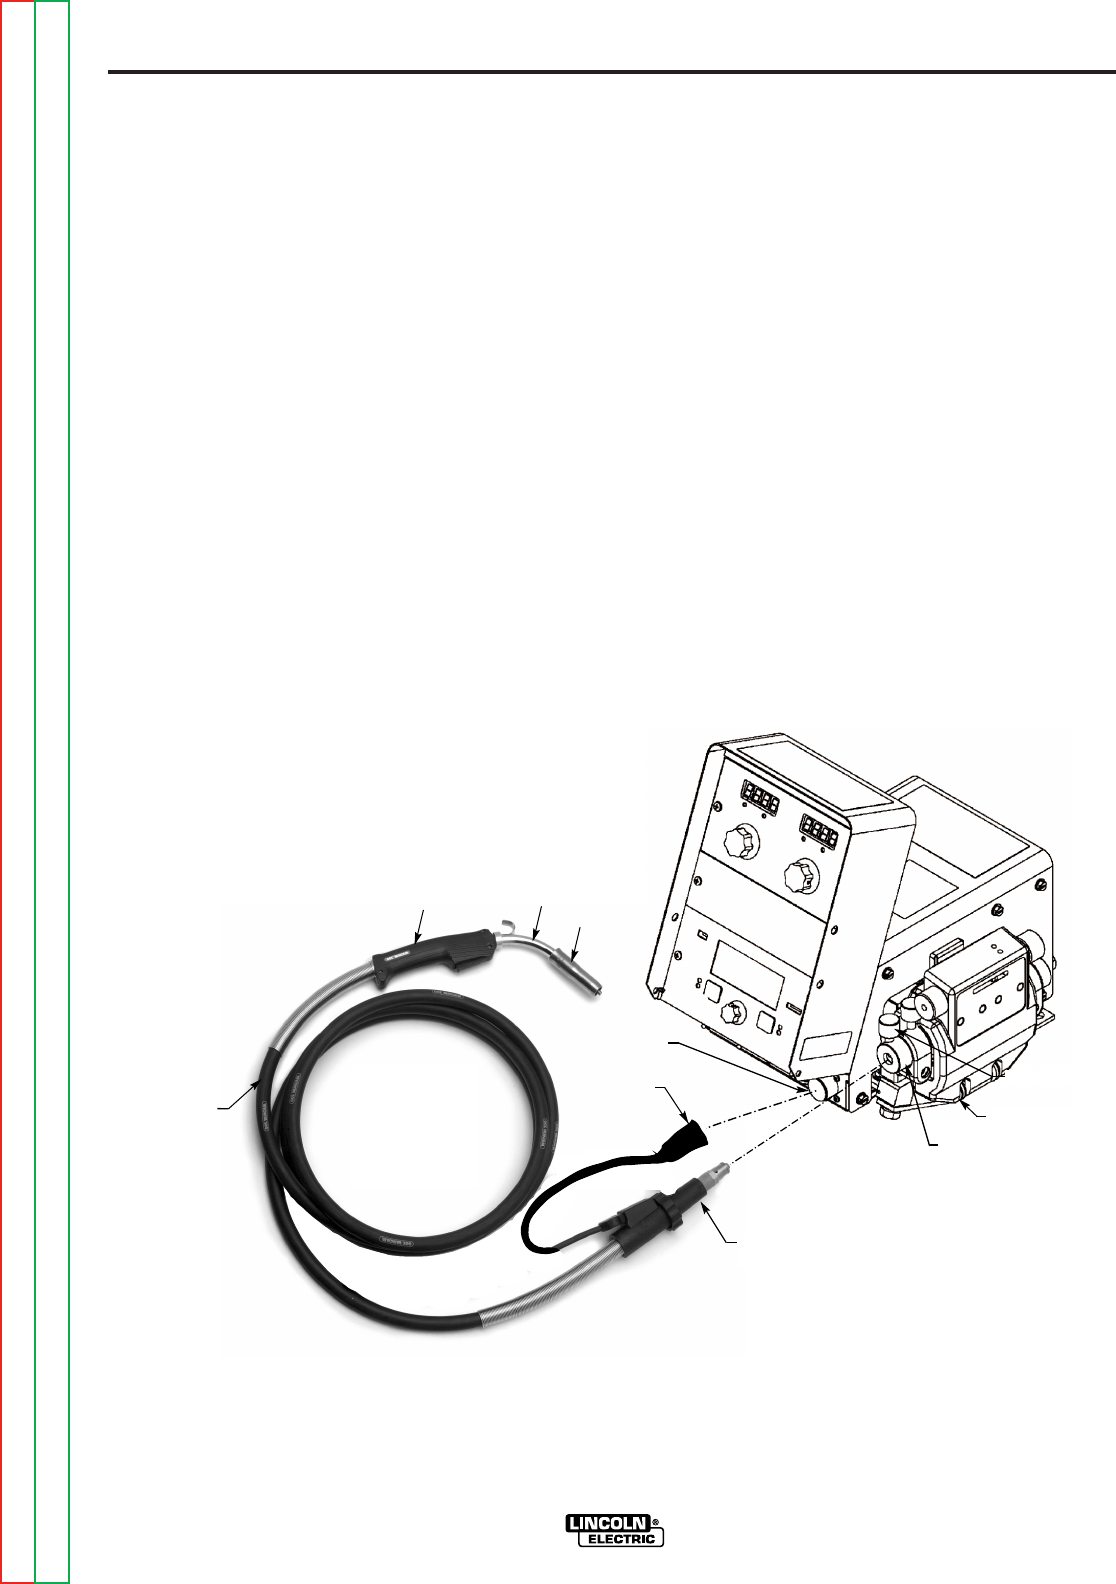 Page 15 of Lincoln Electric Welding System SVM172-A User